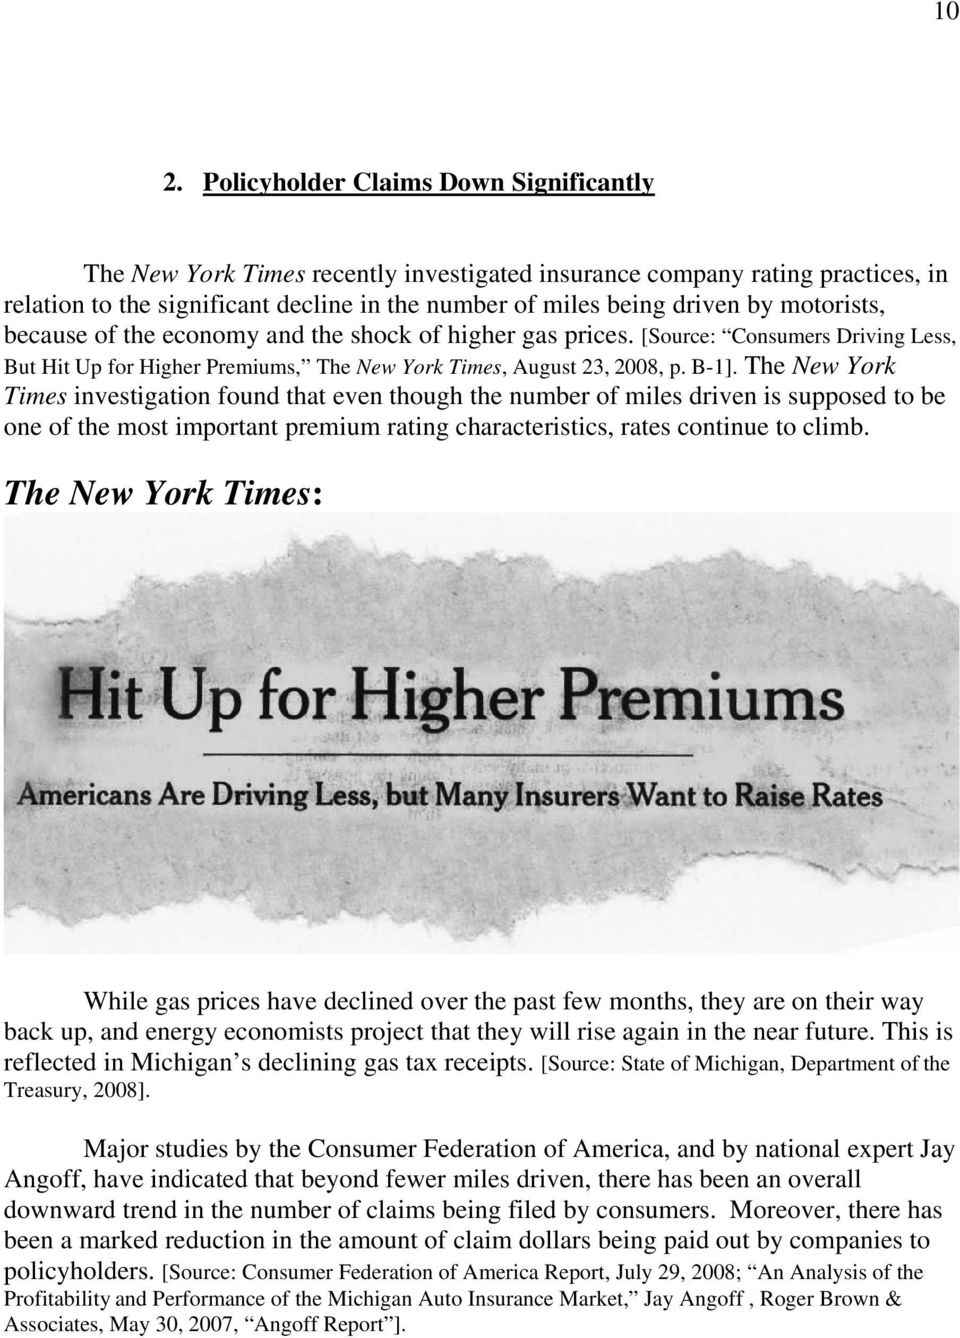 The New York Times investigation found that even though the number of miles driven is supposed to be one of the most important premium rating characteristics, rates continue to climb.